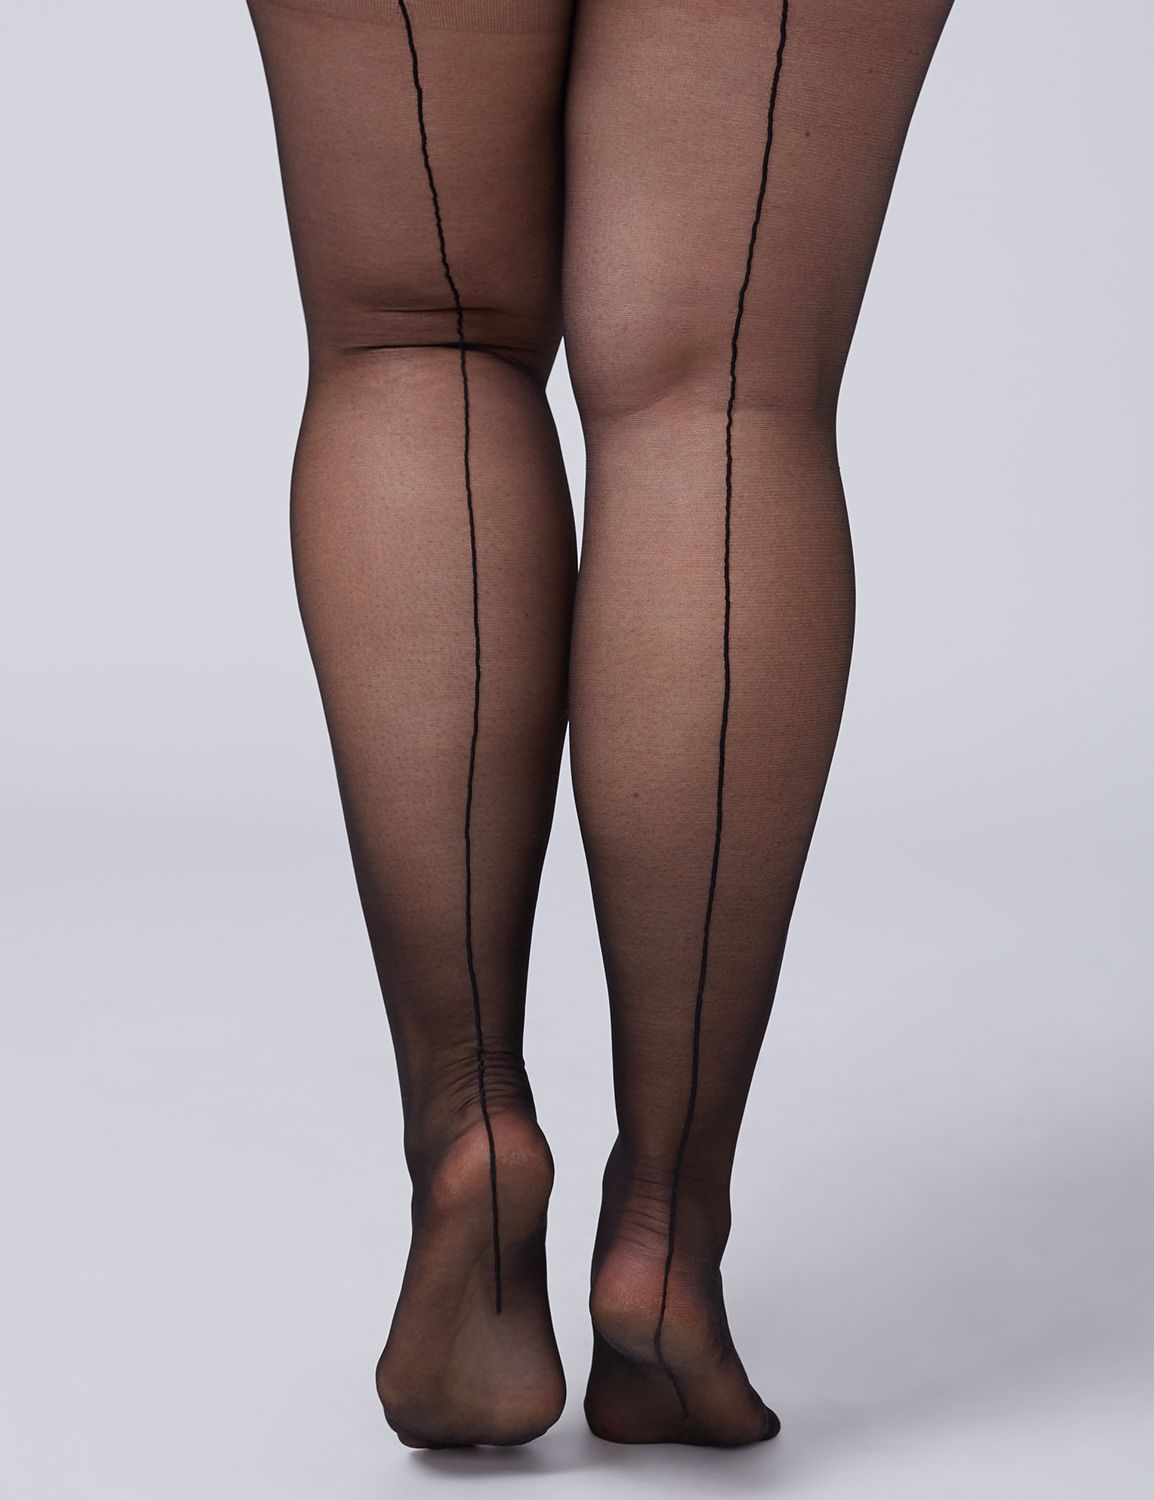 Seamed Stockings, Nylons, Tights Lane Bryant Womens Sheer High-Waist Shaping Tights With Backseam E-F Black $19.95 AT vintagedancer.com